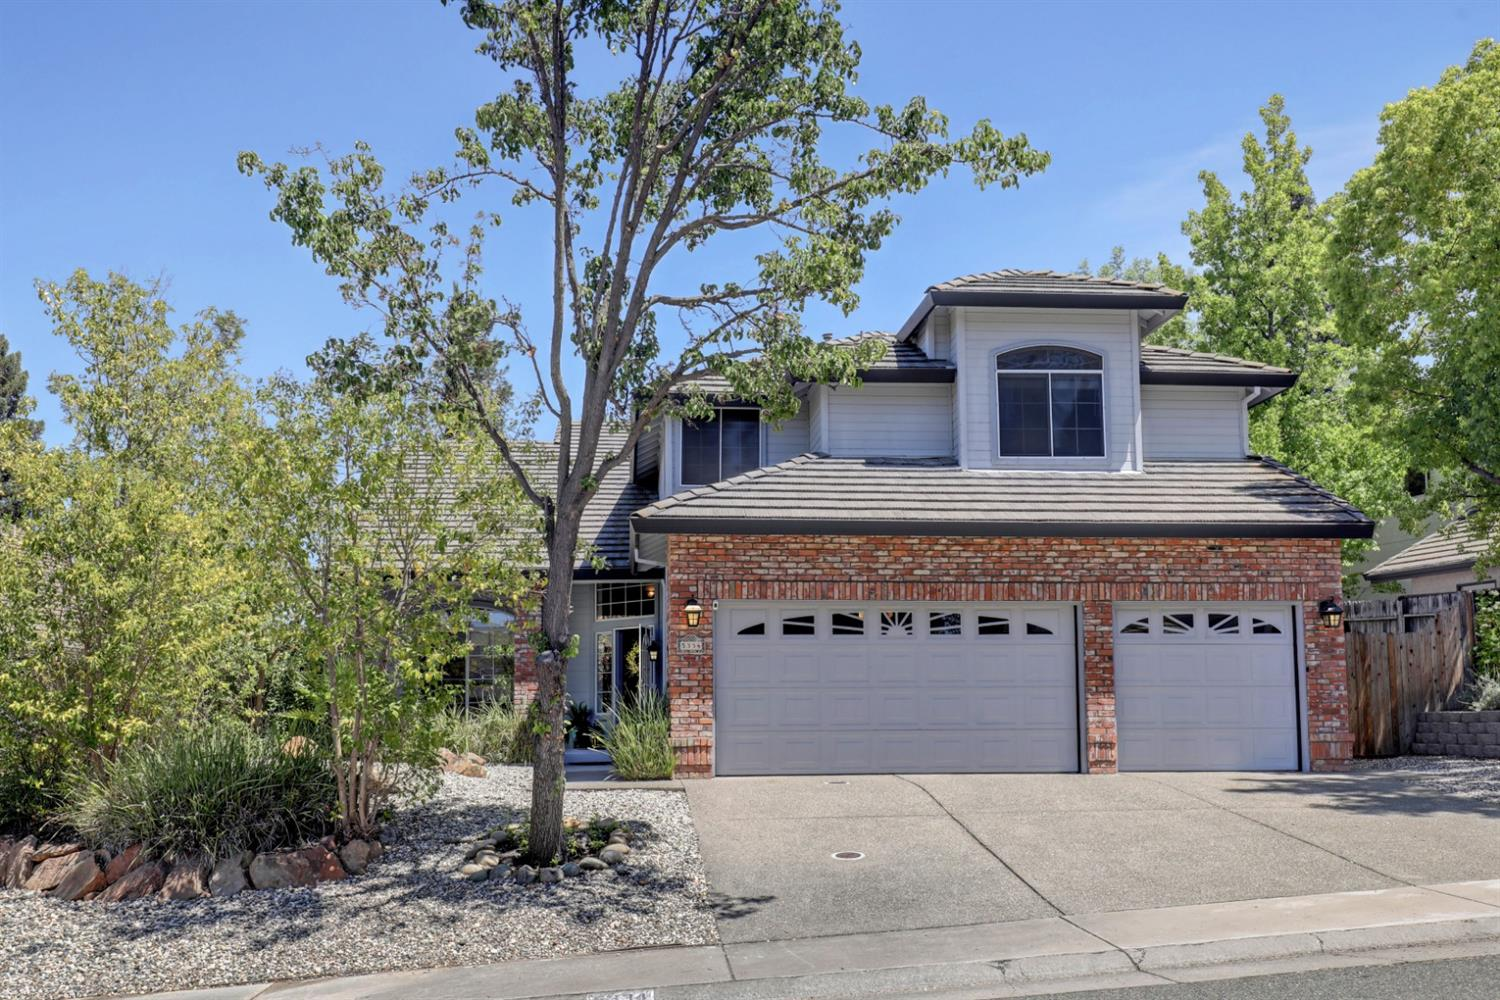 Located in the community of Phoenix Field where pride of ownership is evident!  Formal living and dining rooms and large chef's kitchen that opens to the family room.  Kitchen has island with sink as well as wet bar with sink - great for entertaining! Downstairs has 4th bedroom with full bath near- great for multi-generational living! Upstairs enter the large master suite with sitting area, fireplace and balcony.  Relax in the jetted tub by the fireplace.  New carpet throughout and vinyl tile flooring in kitchen.  Backyard is low-maintenance with garden area and putting green. Backyard mature fruit trees include apple, kumquat, lemon and lime.  Close to Little Phoenix Park, 64-acre Phoenix Park and the American River Parkway.  WELCOME HOME!